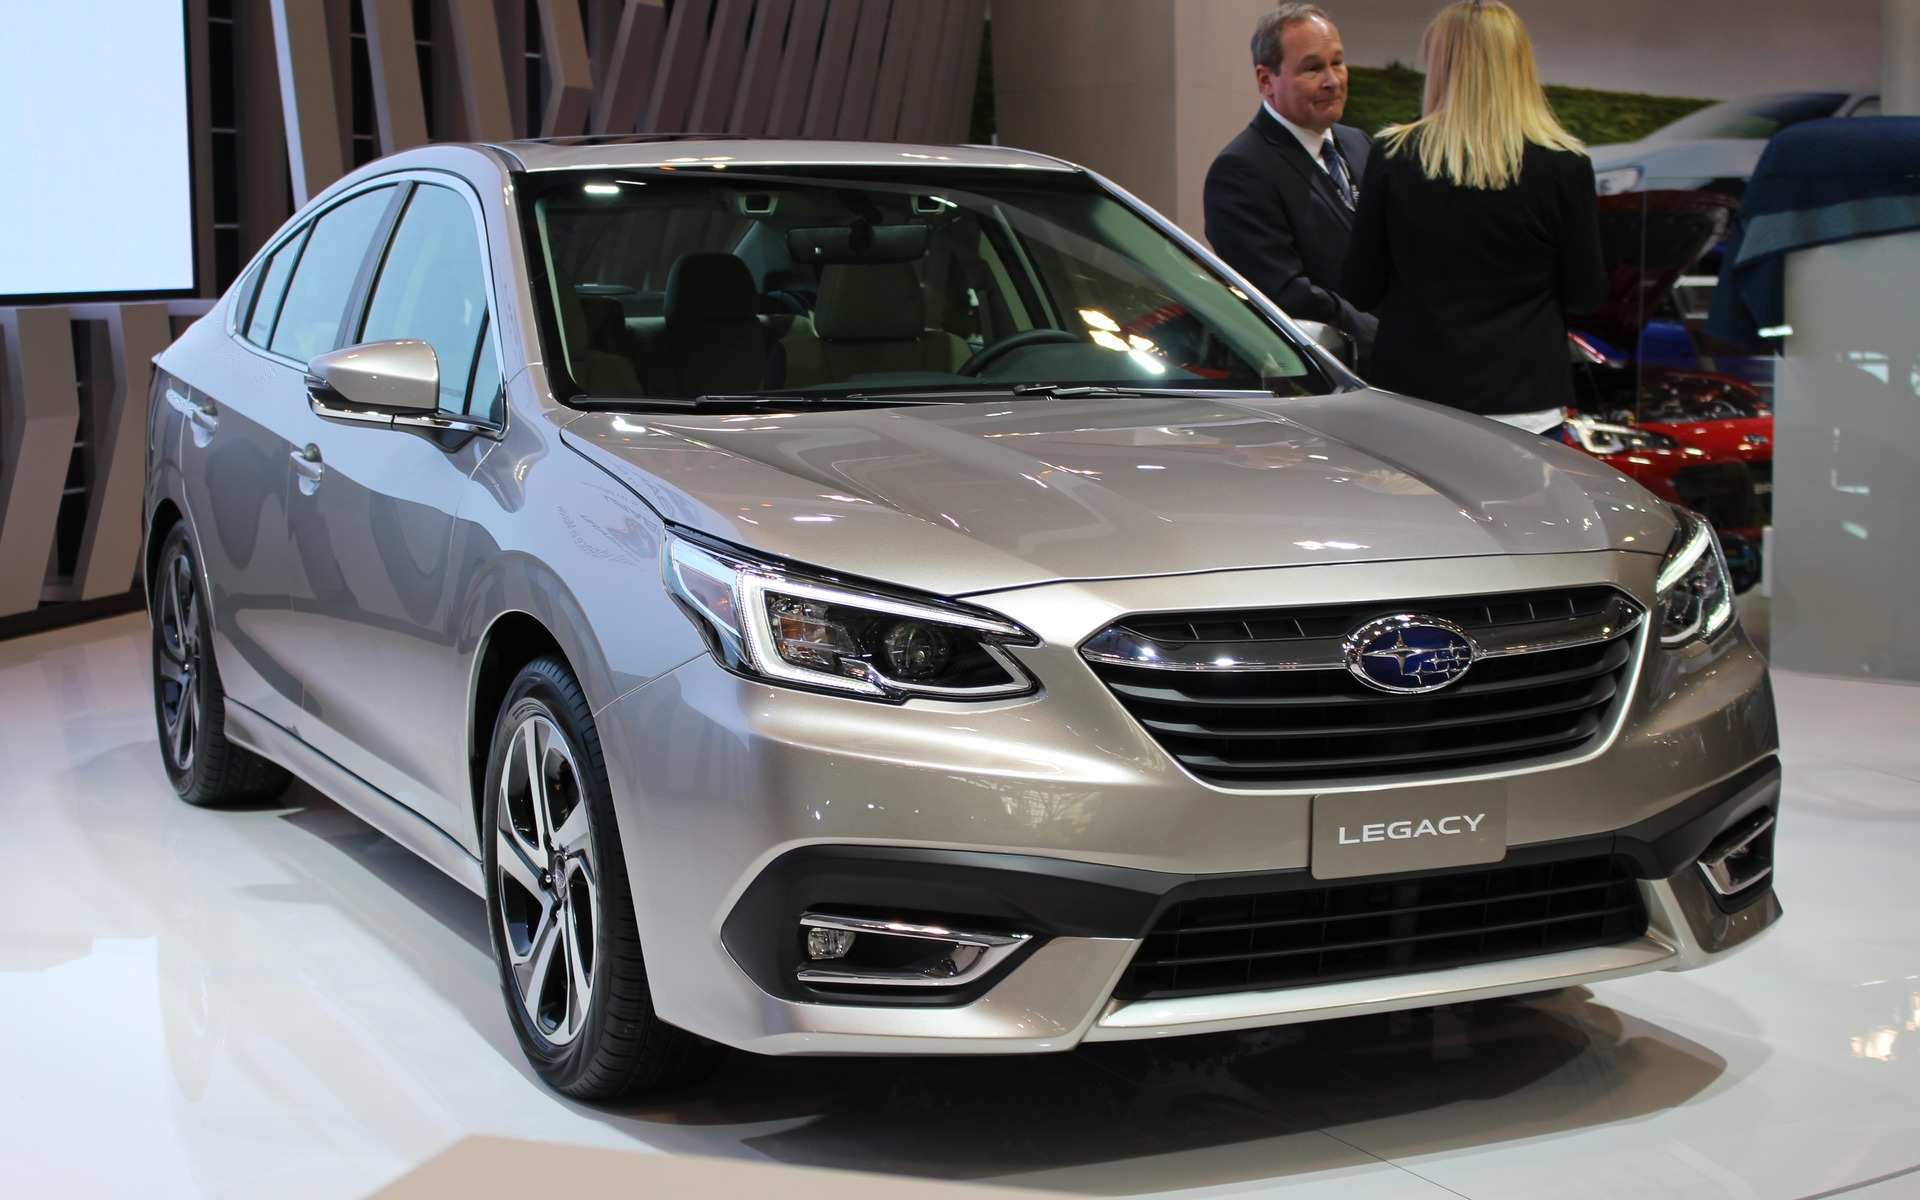 35 New 2020 Subaru Legacy Turbo Gt Prices